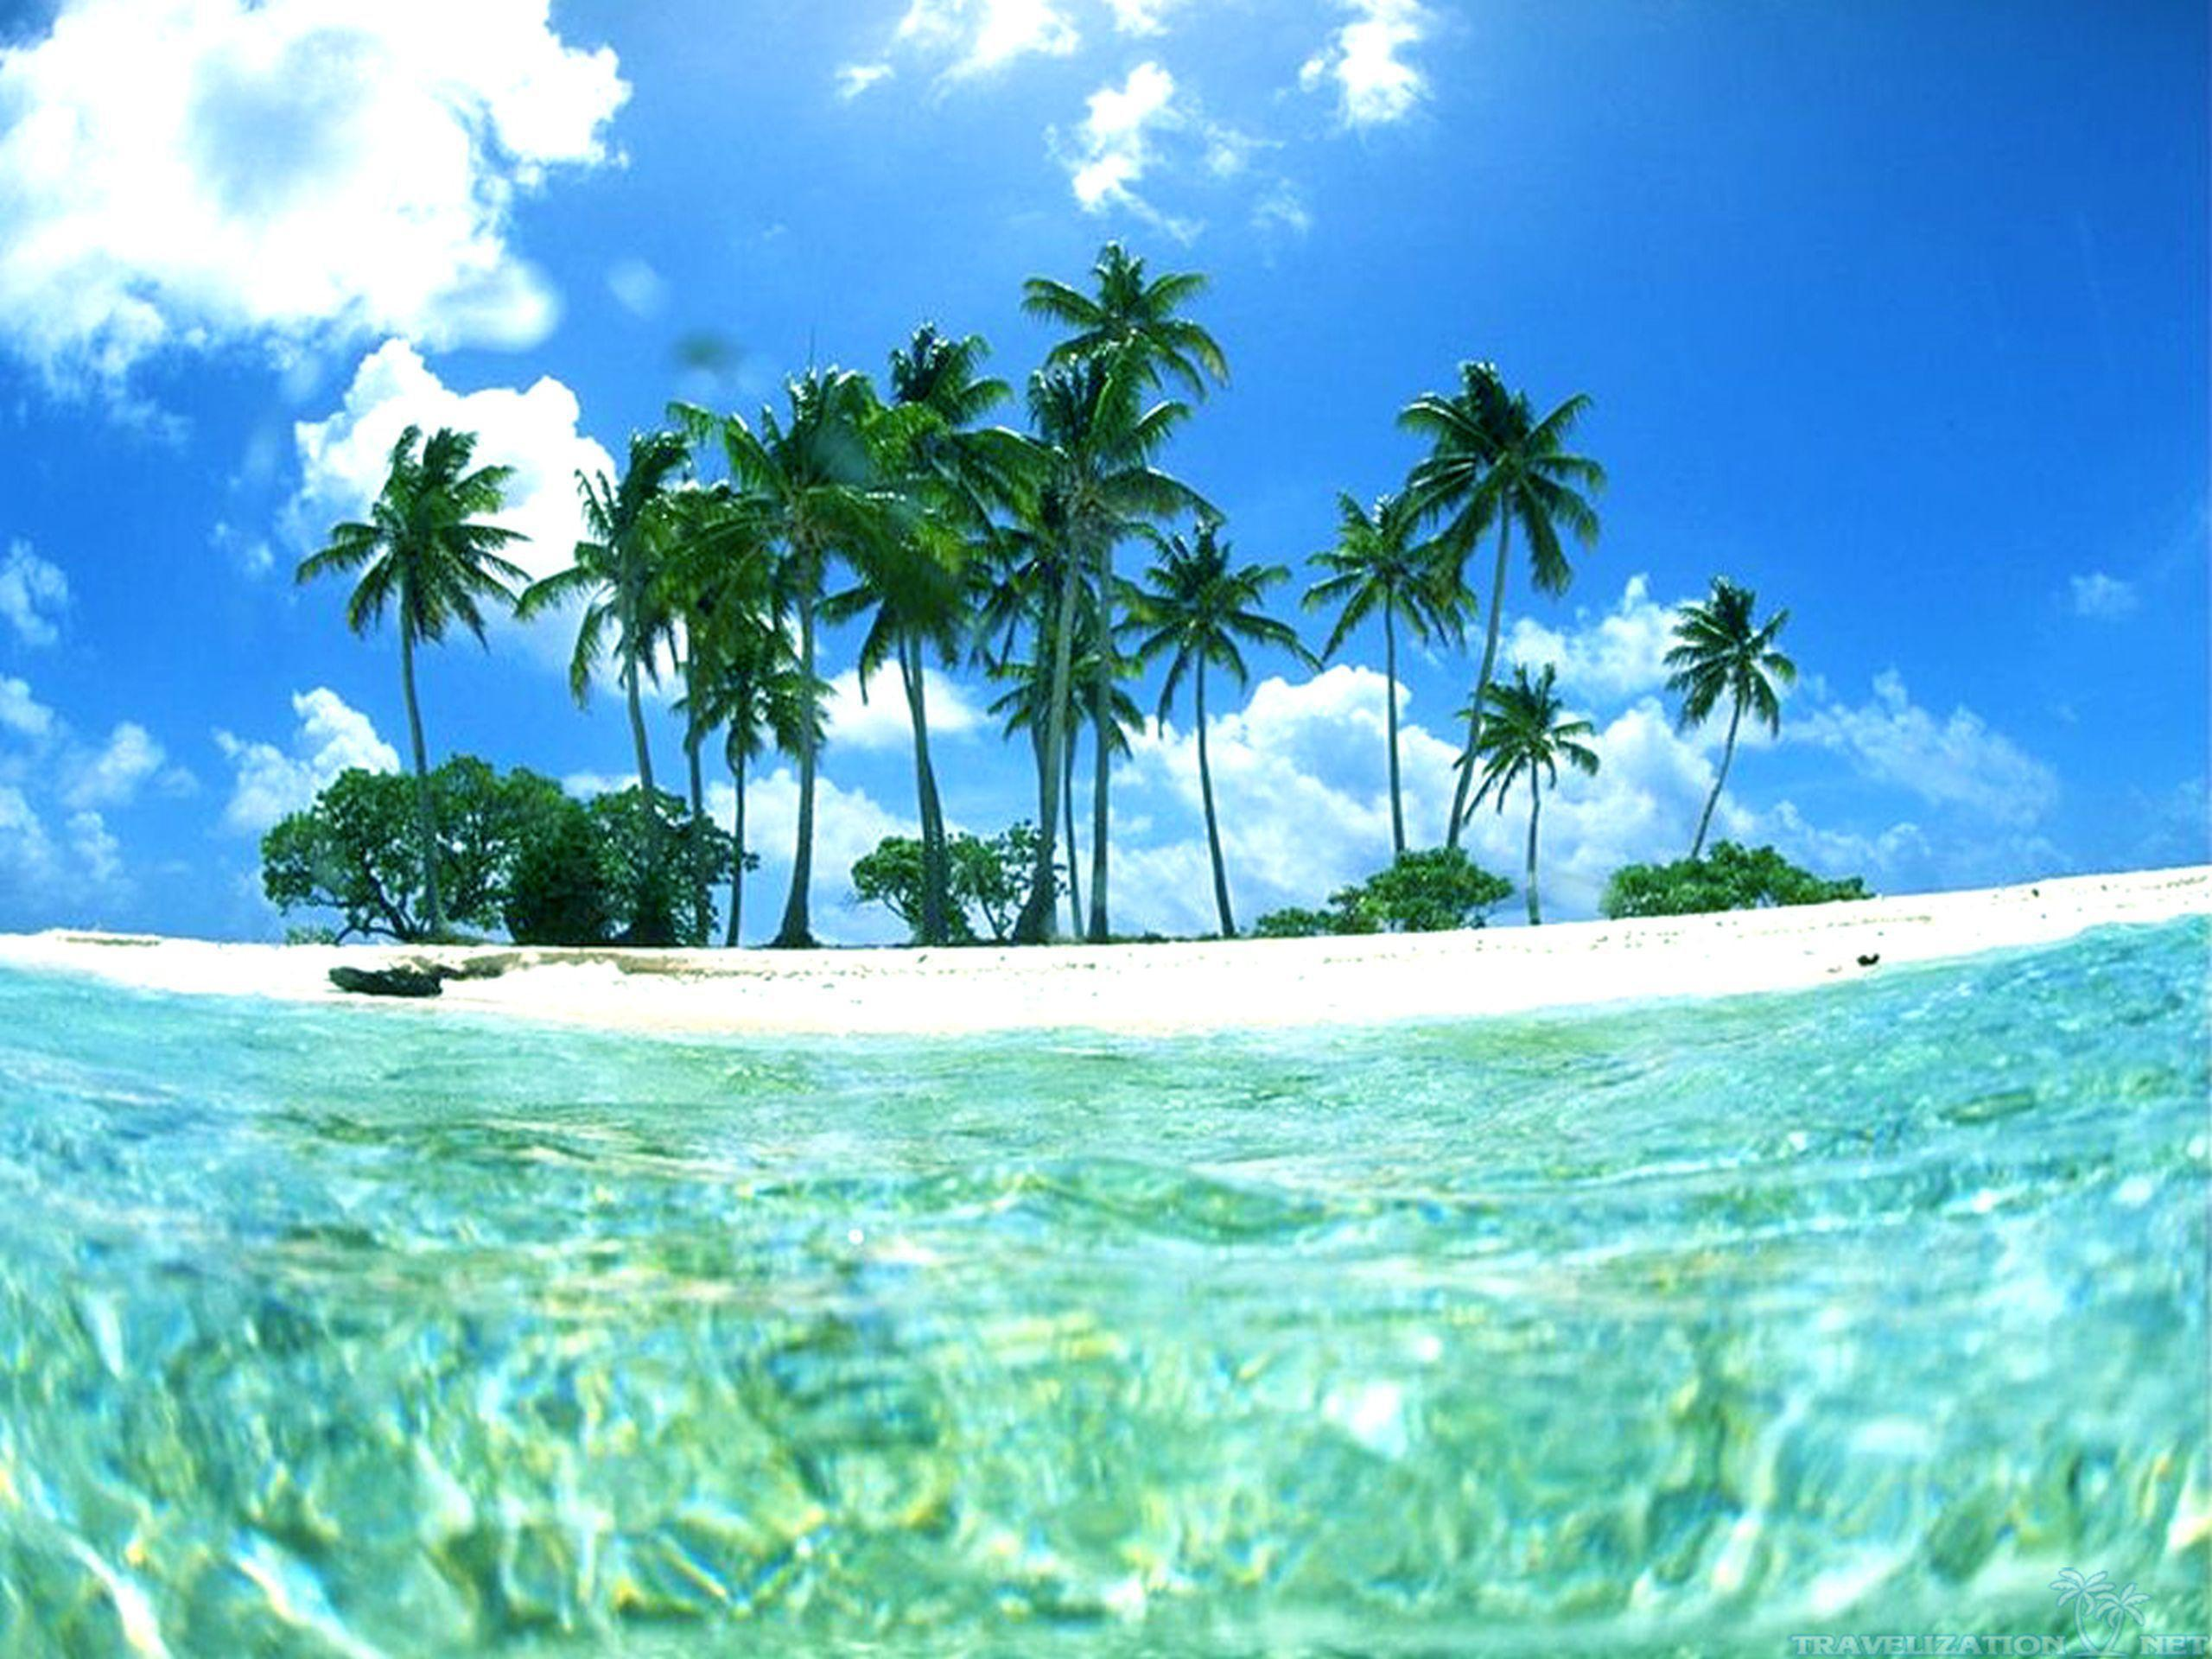 Hd Tropical Island Beach Paradise Wallpapers And Backgrounds: Tropical Beach Backgrounds